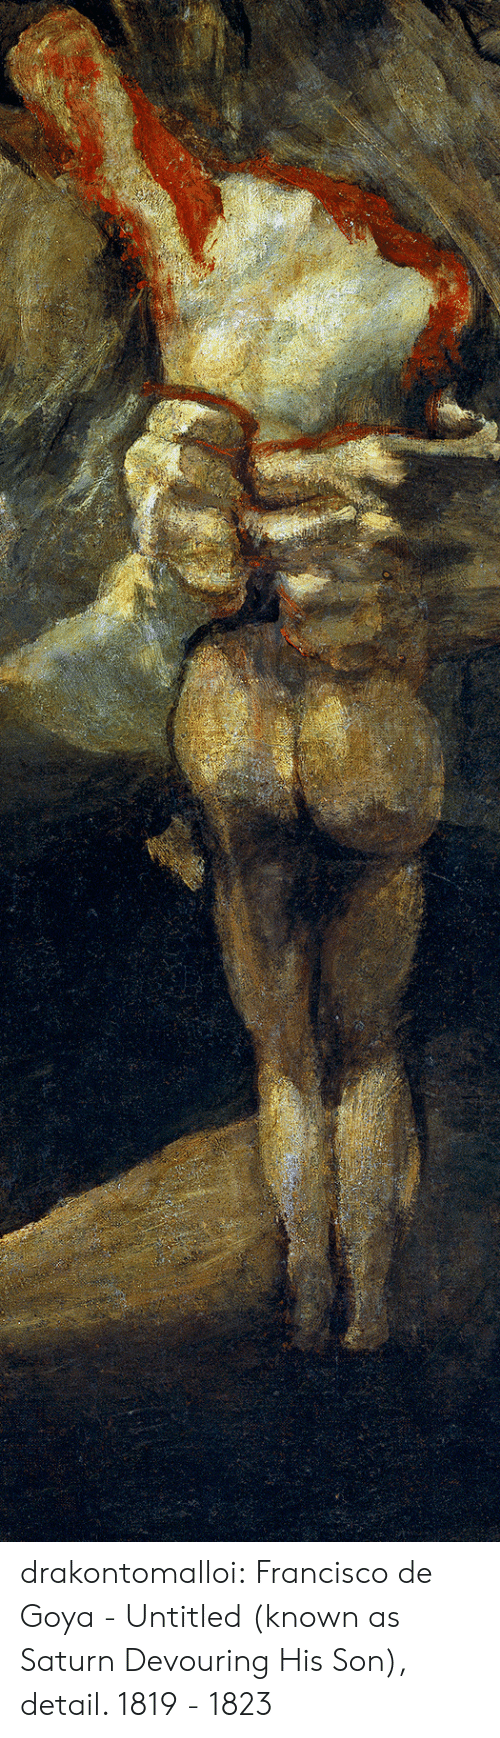 Francisco: drakontomalloi: Francisco de Goya - Untitled (known as Saturn Devouring His Son), detail. 1819 - 1823